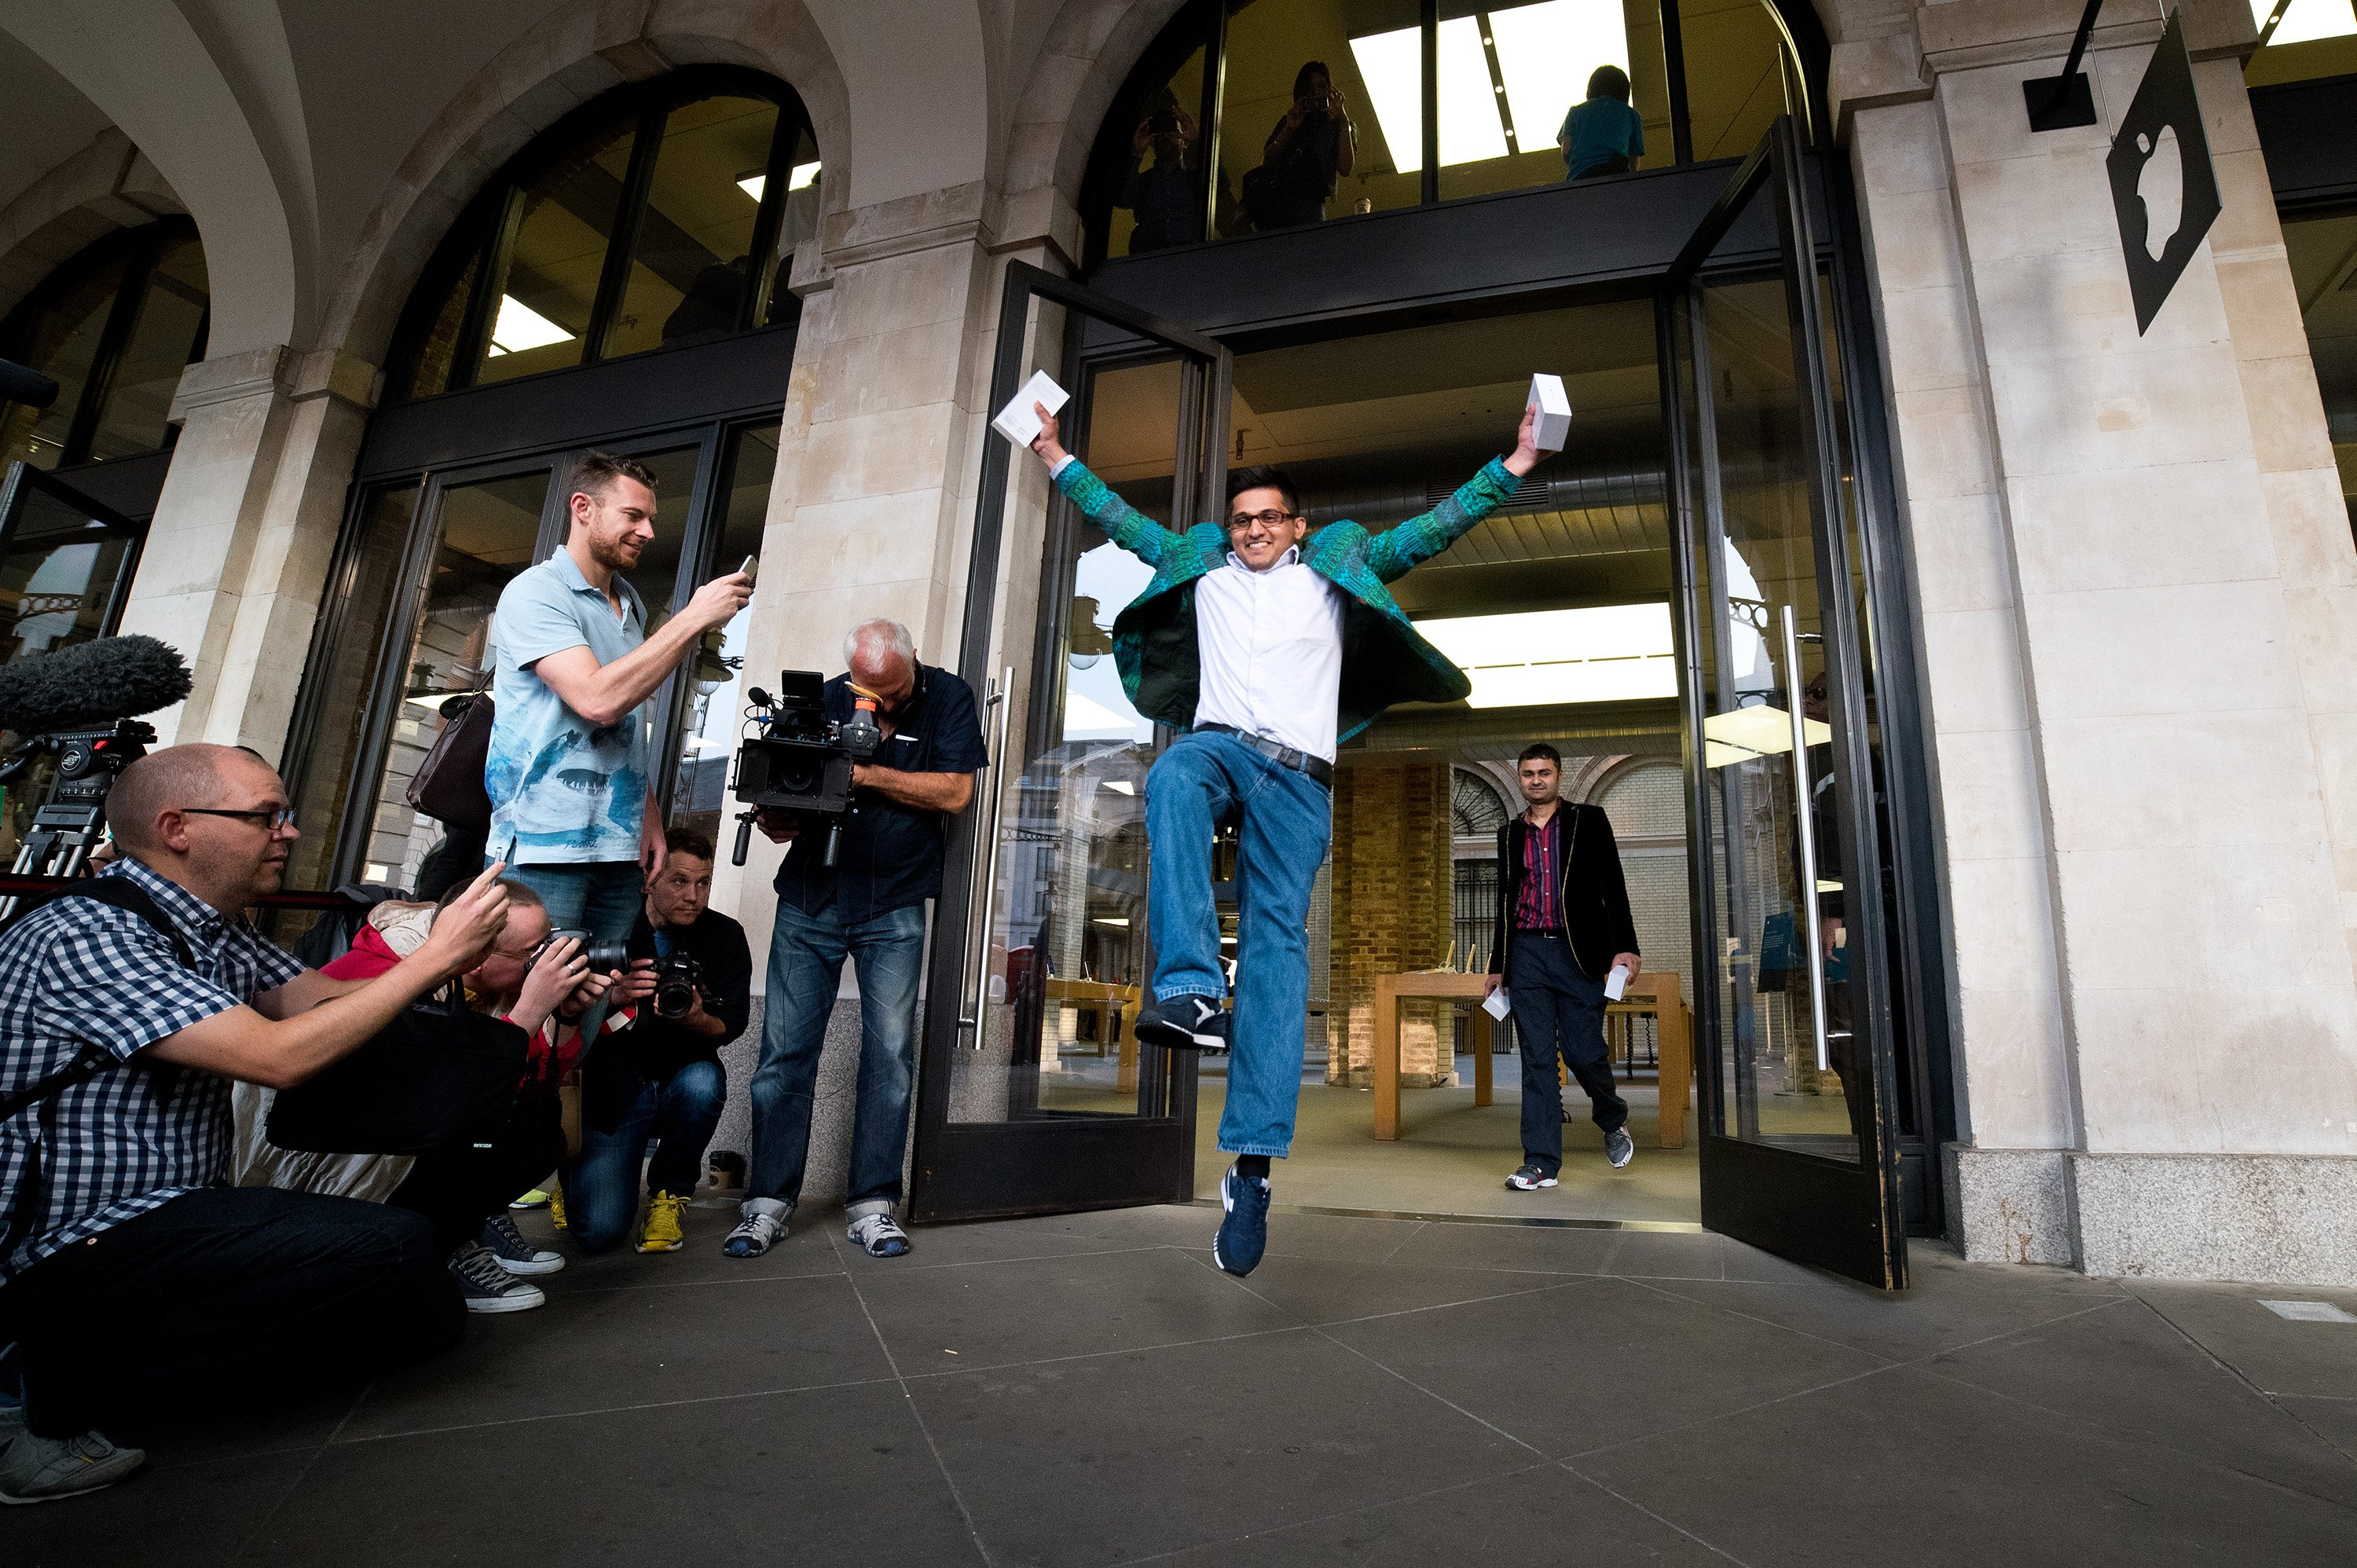 Jamael Ahmed jumps in the air as he leaves the store after being the first to purchase the iPhone 6 at Apple Covent Gardens  in London on Sept. 19, 2014.